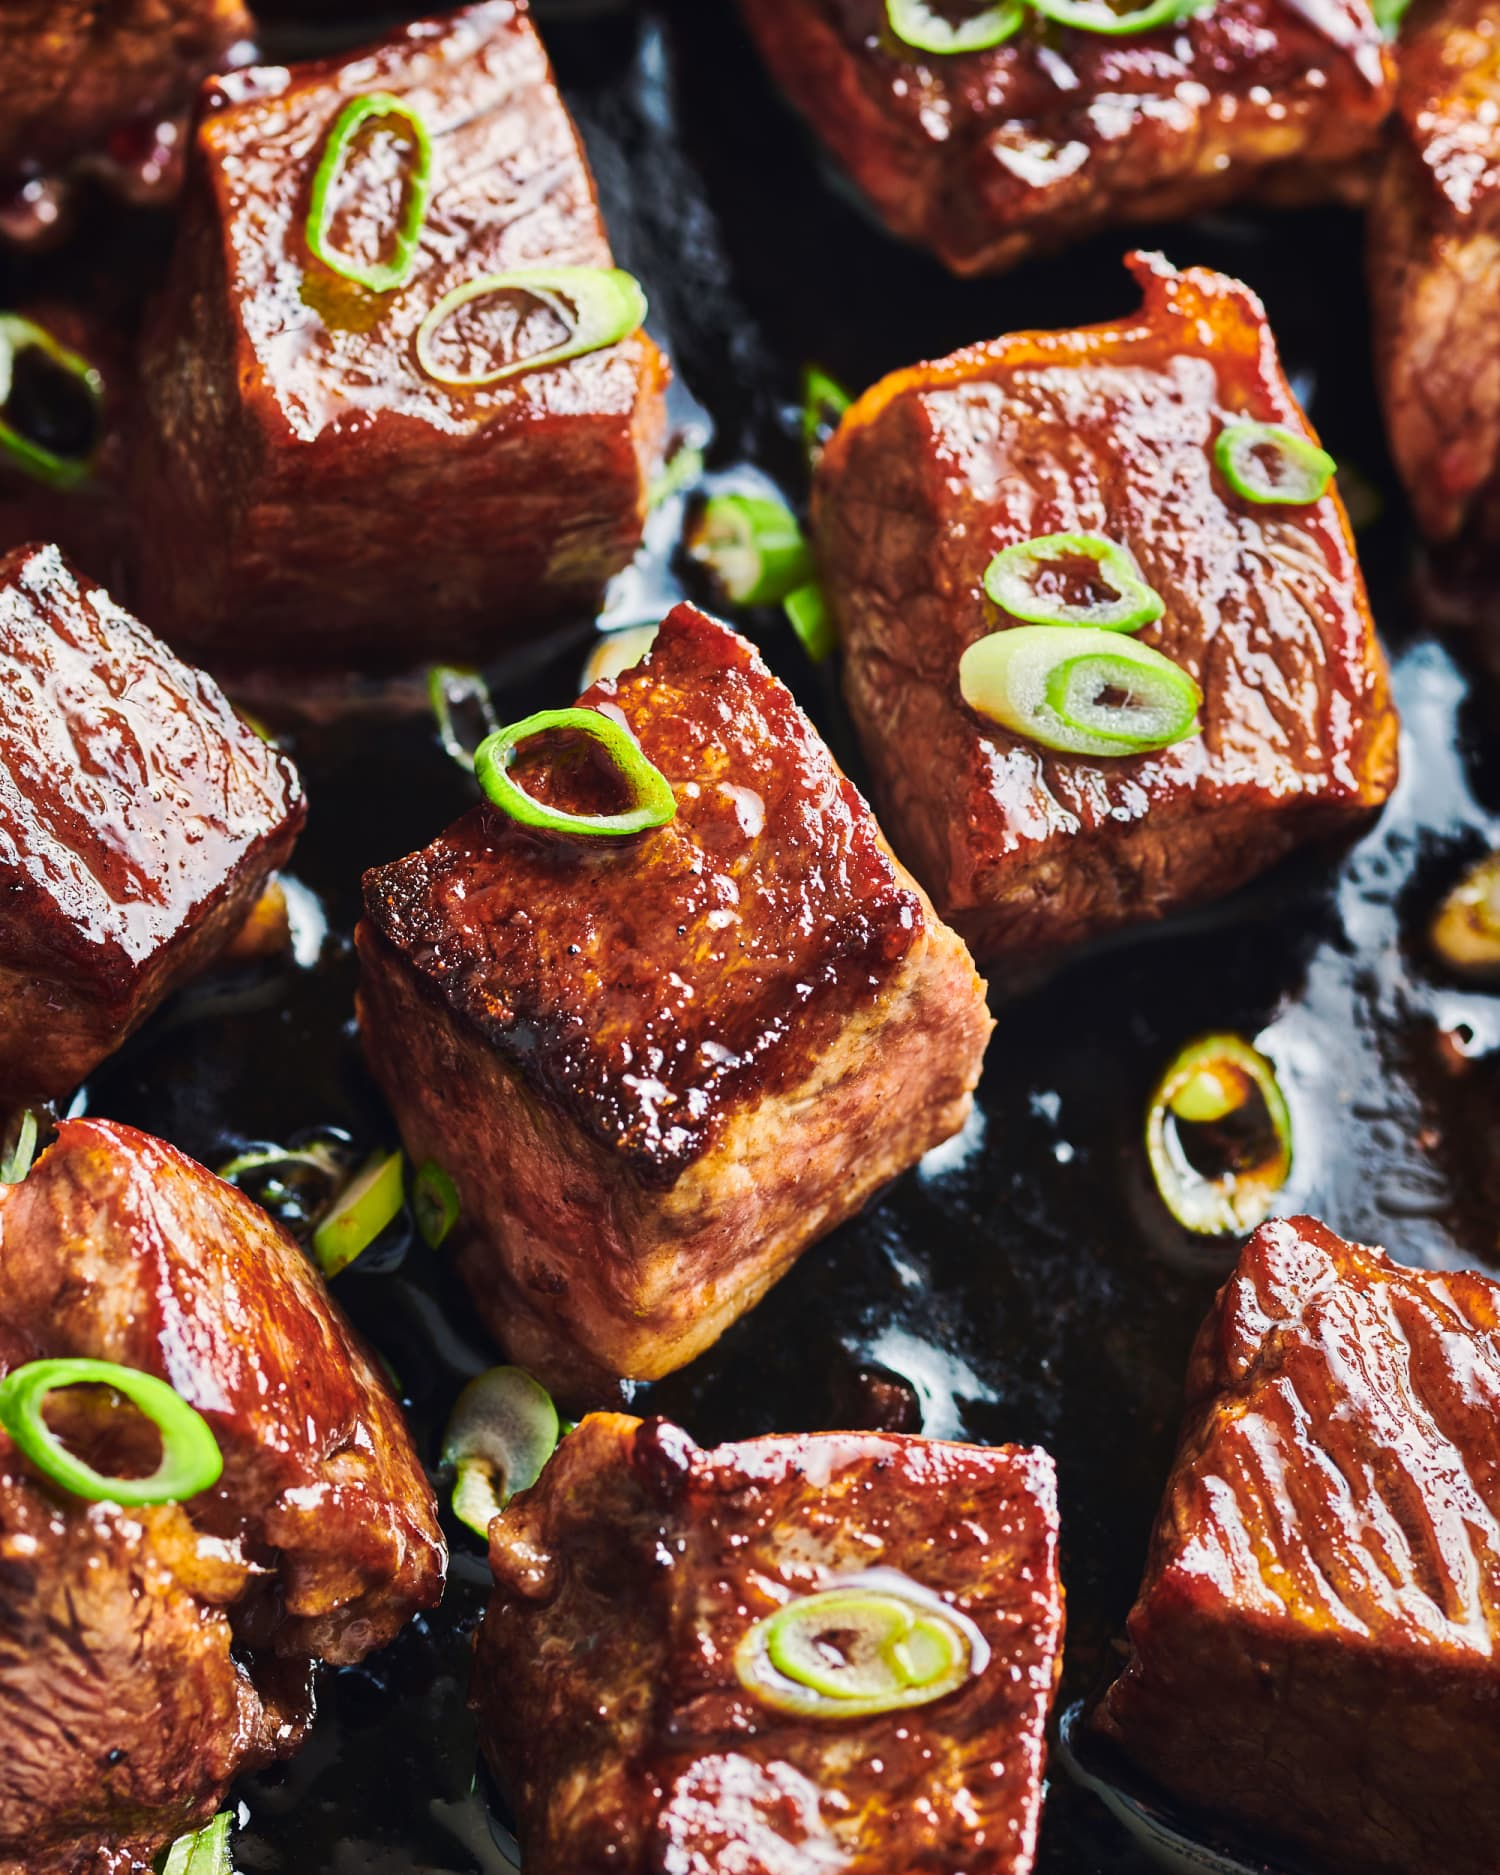 Treat Yourself to Honey-Balsamic Steak Bites Tonight